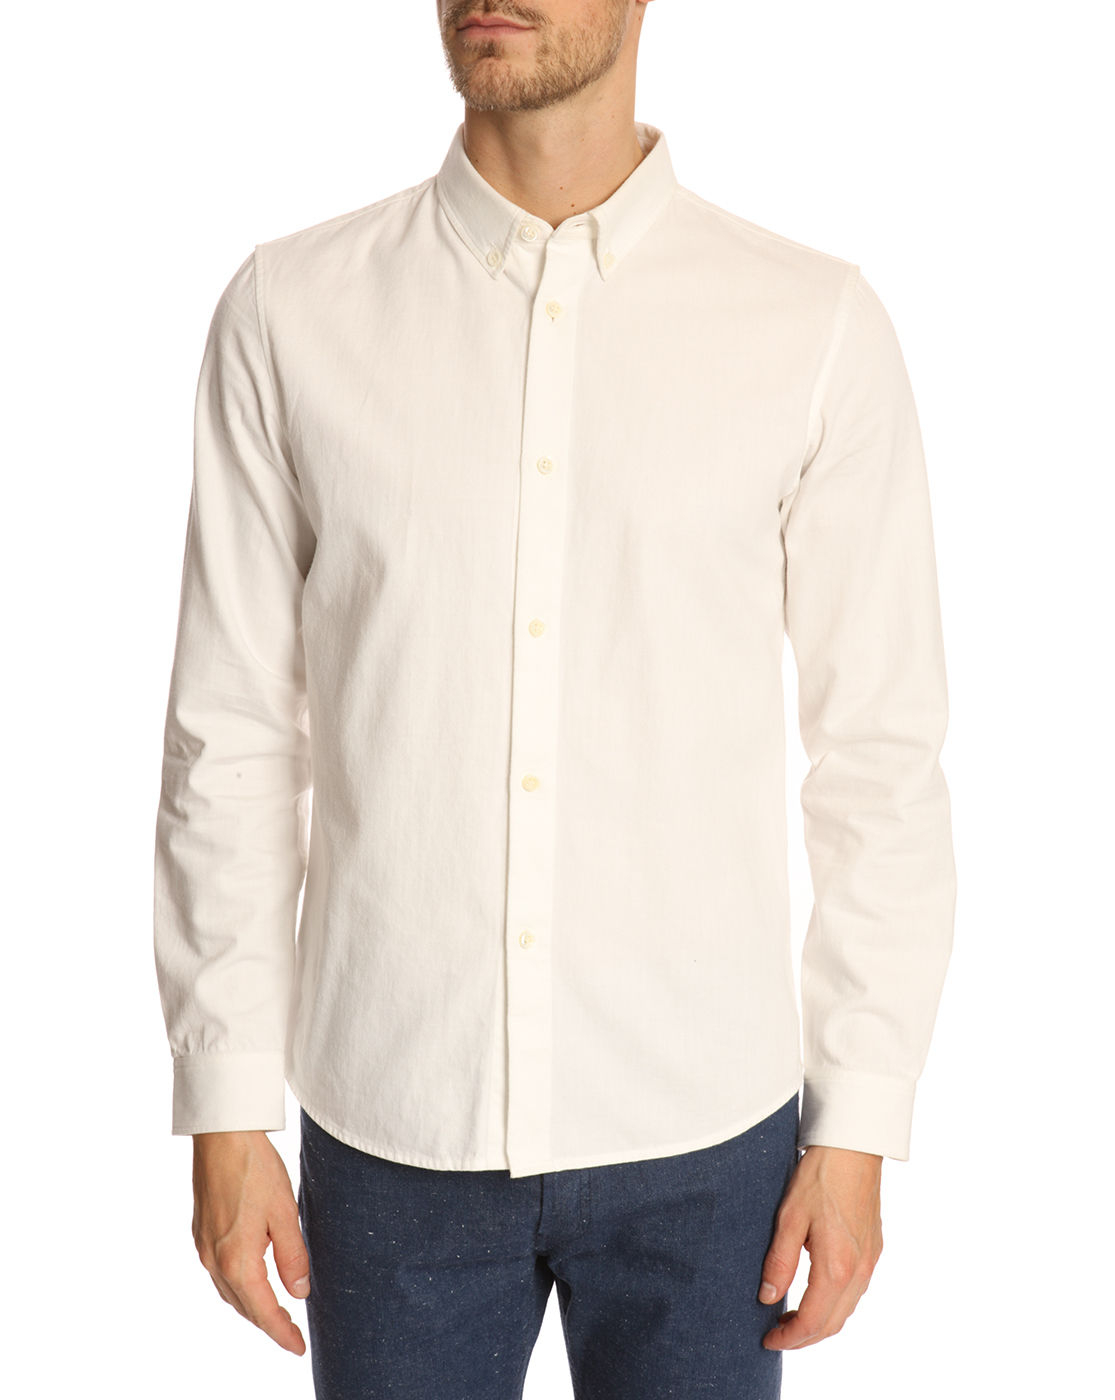 Off White Button Down Shirt | Is Shirt